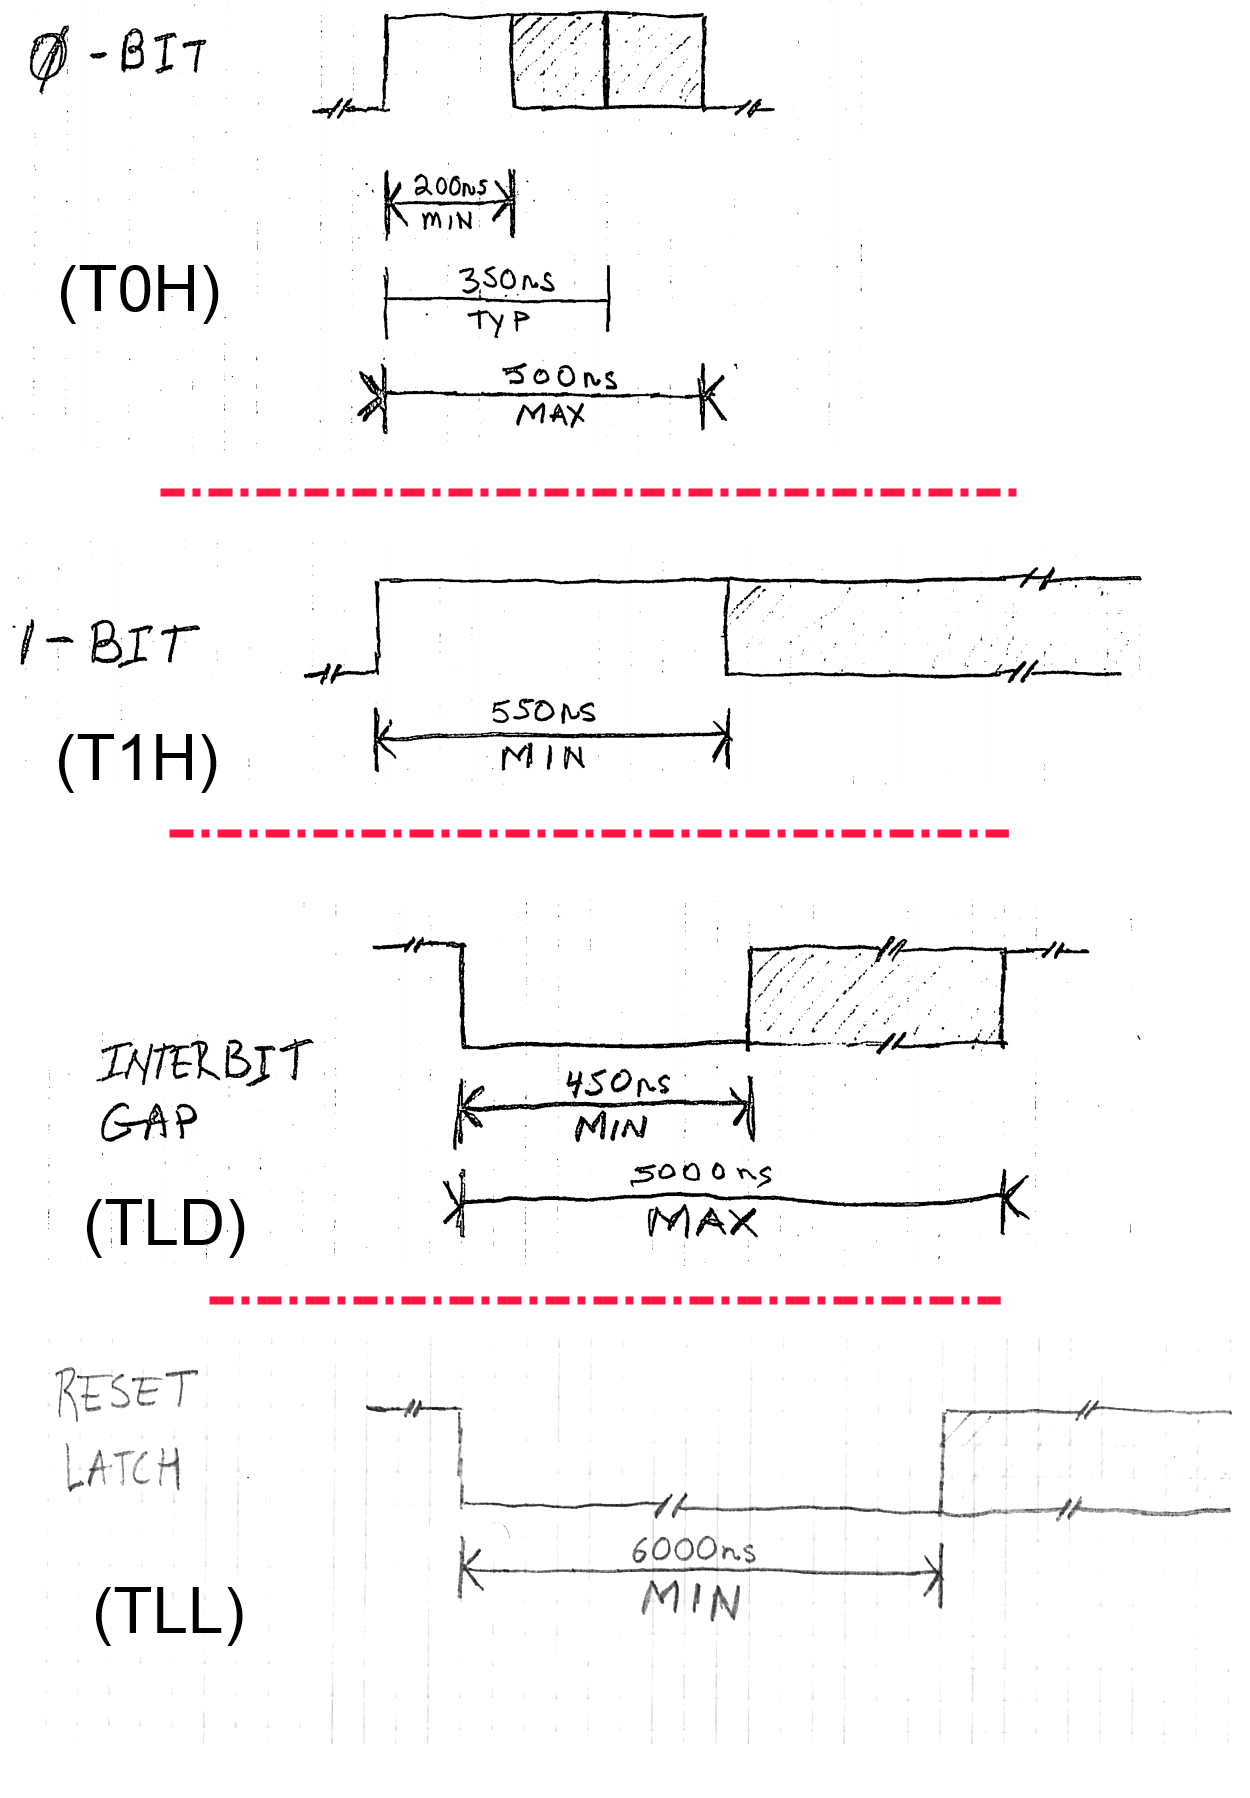 uart timing diagram 2011 ford f150 radio wiring neopixels revealed how to not need generate